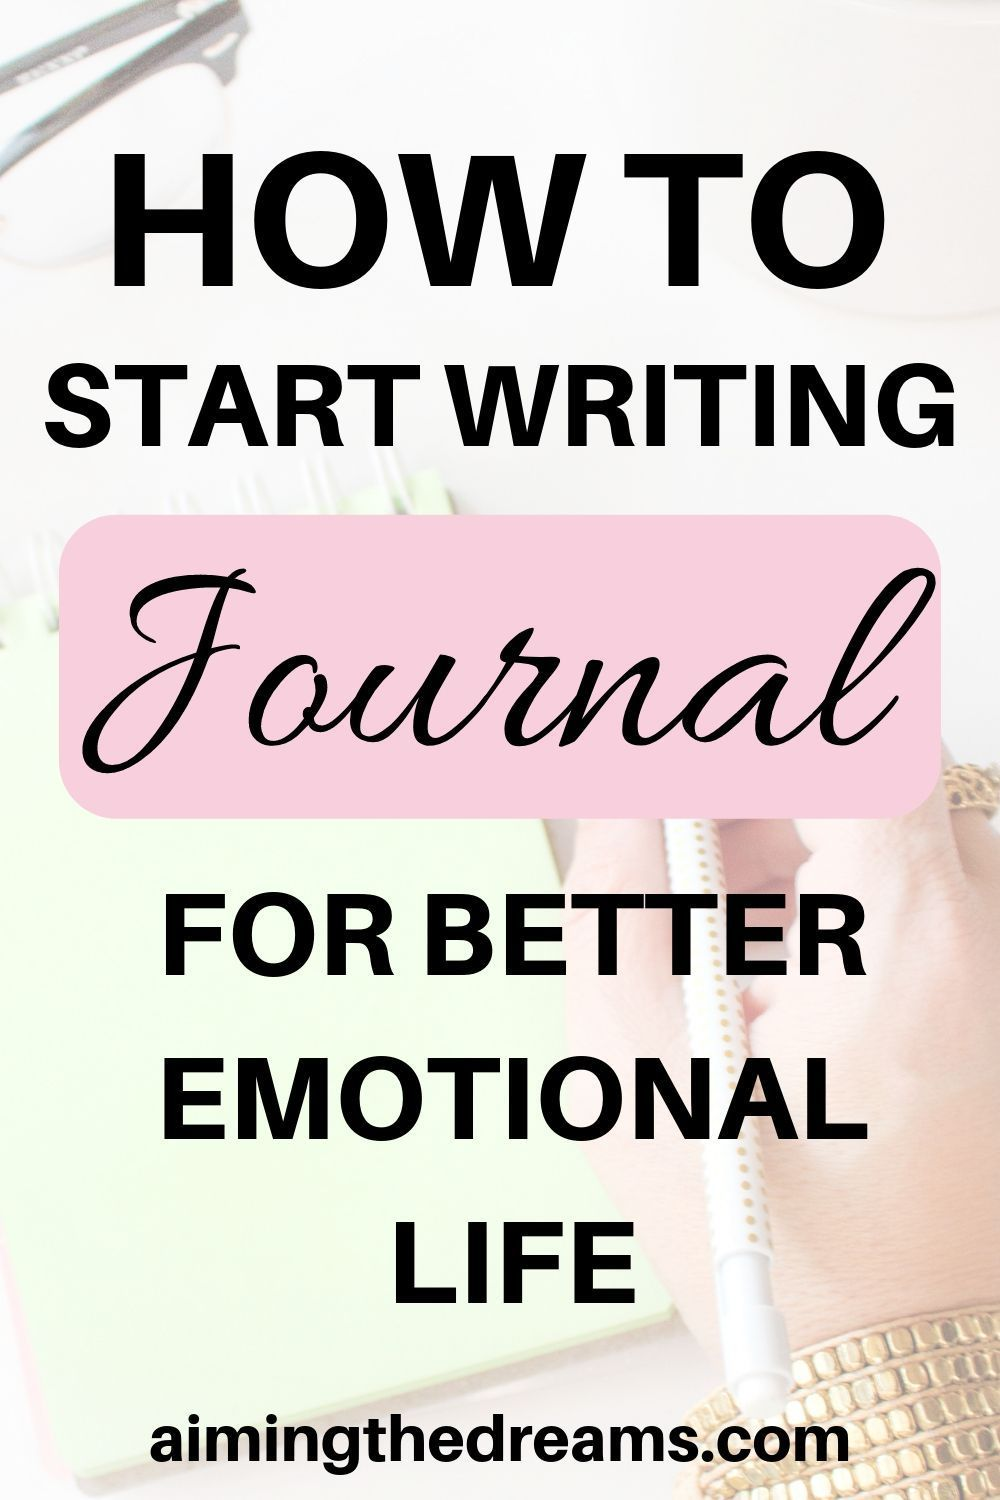 to start writing a journal for emotional health How to start writing a journal for better emotional health. payHow to start writing a journal for better emotional health. pay